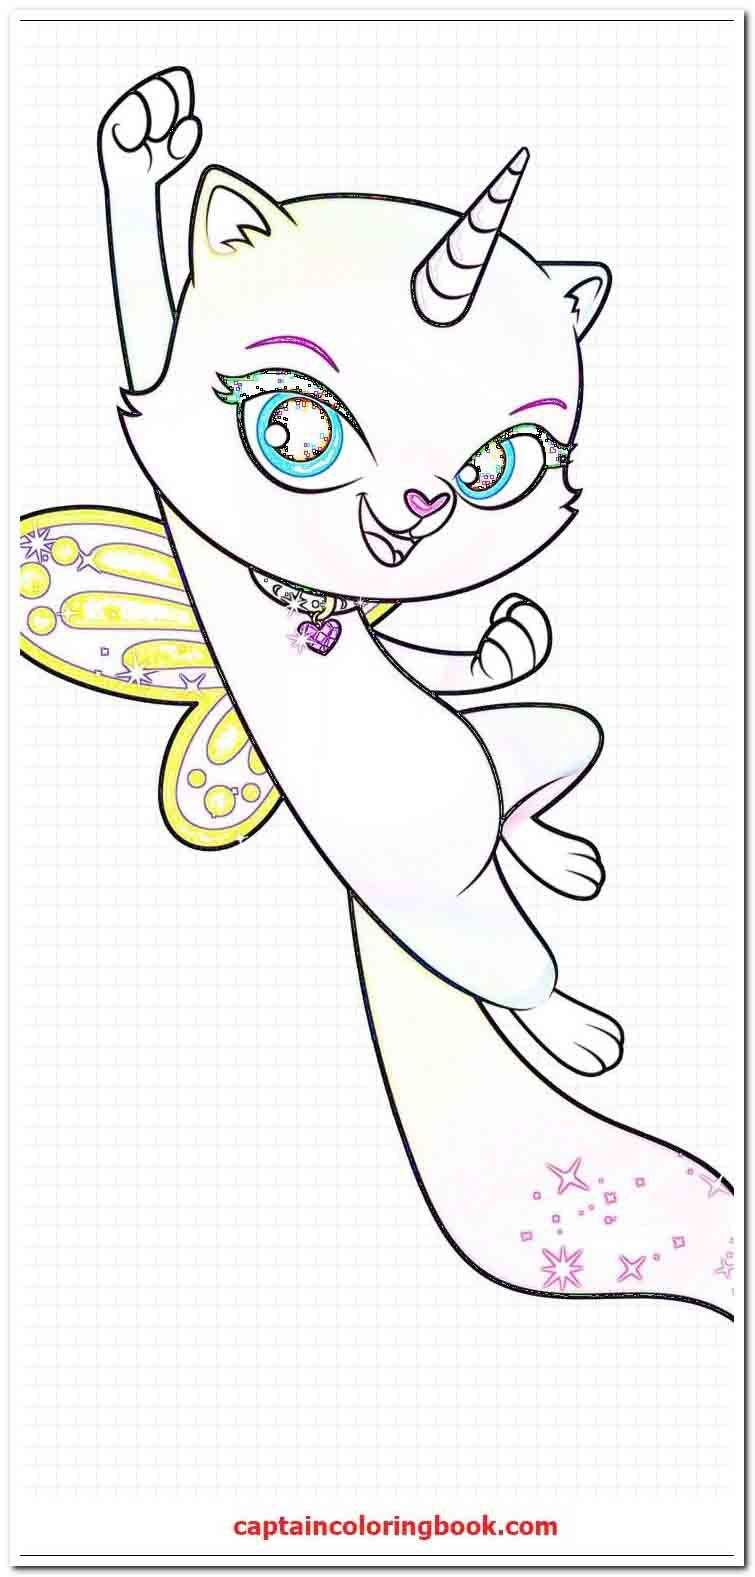 17 Coloring Pages Coloring Page Printables In 2020 Kitty Coloring Hello Kitty Colouring Pages Unicorn Coloring Pages